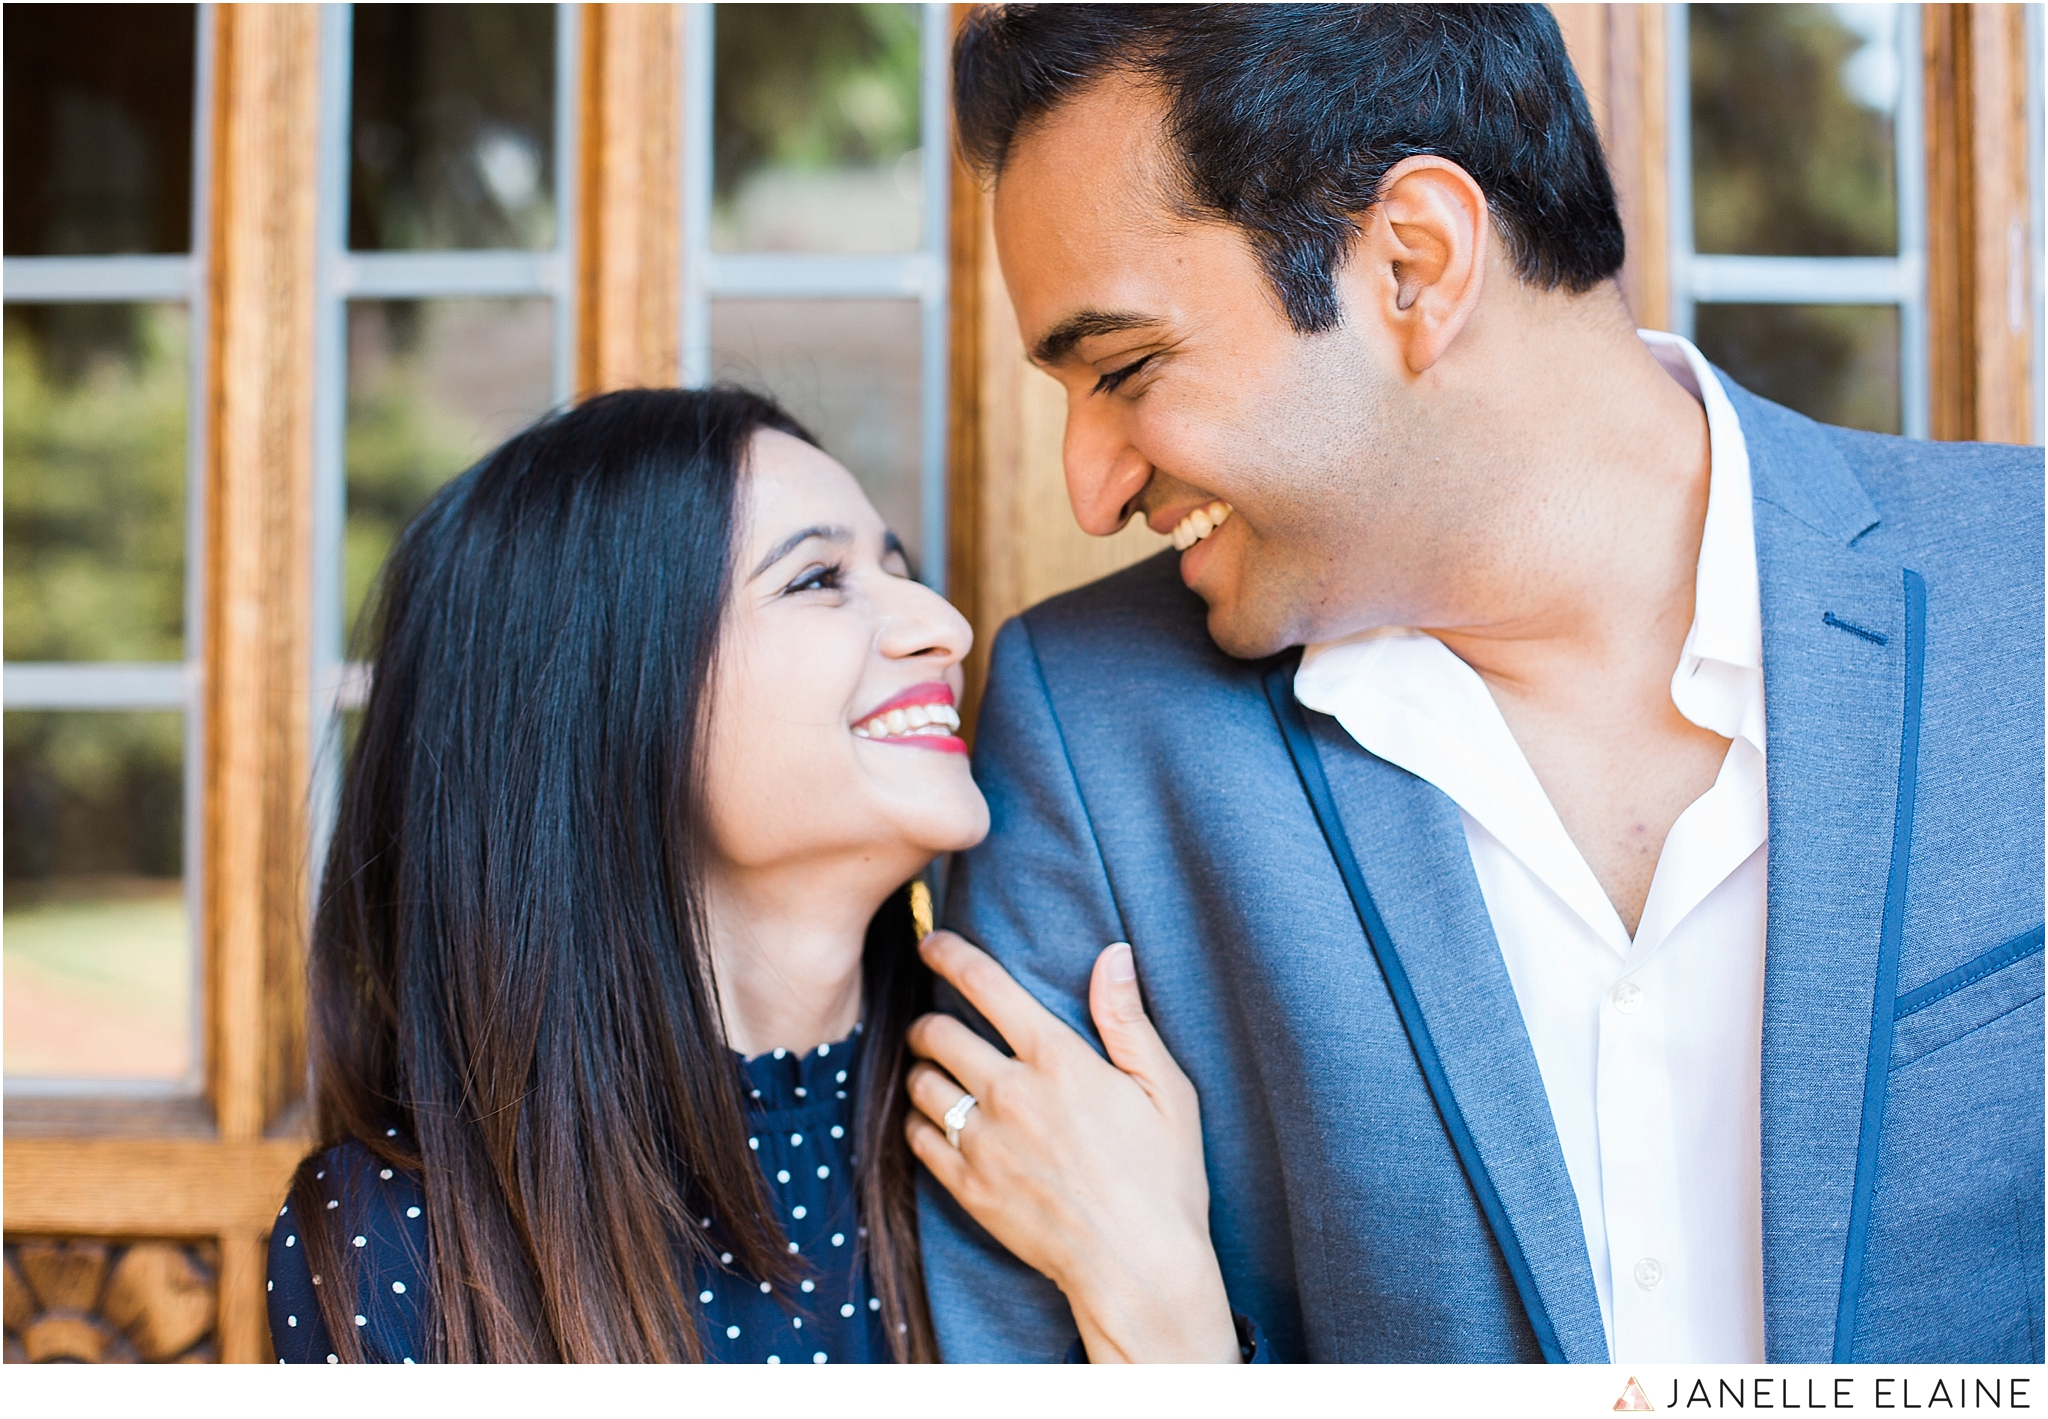 janelle elaine photography-zain and umema-seattle-uw-red square-engagement-photographer-39.jpg